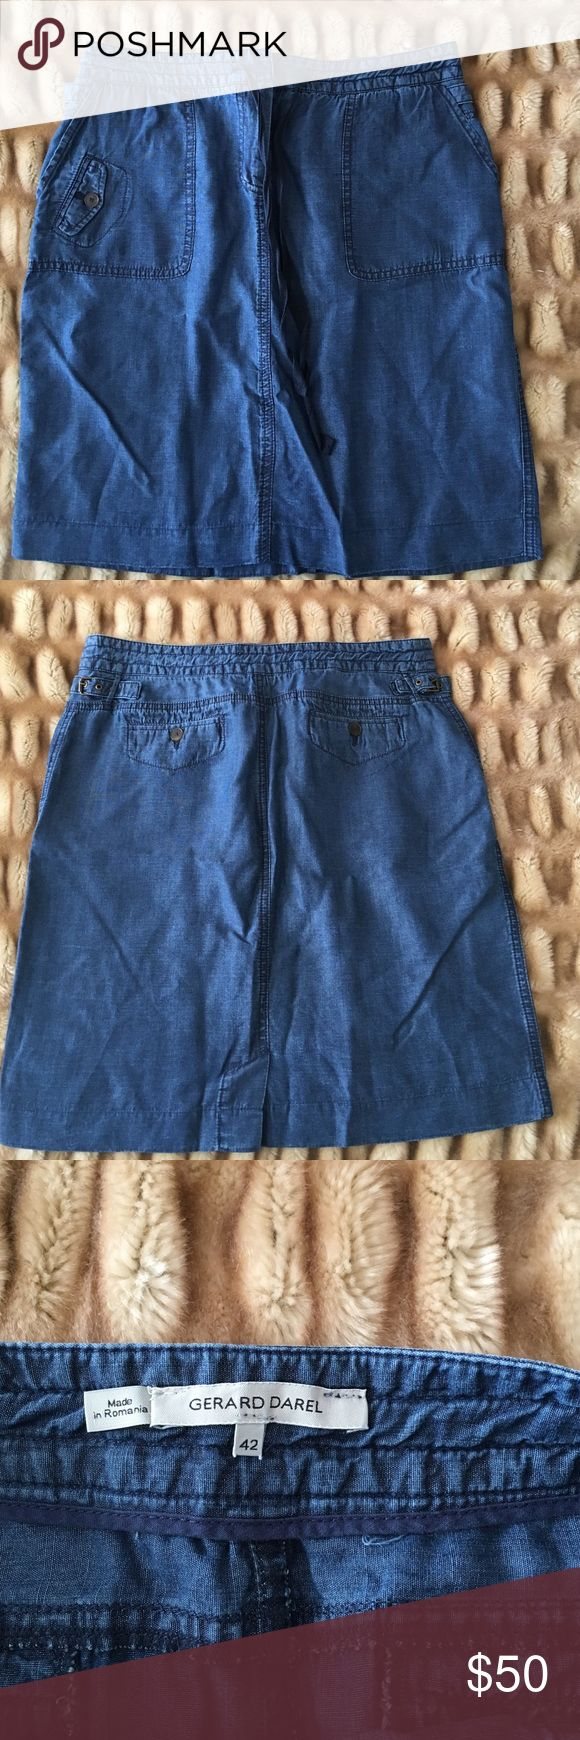 Gerard Darel Denim skirt Denim skirt! Perfect for Sunday brunch, a day out with the girls or a nice BBQ! Gerard Darel Skirts